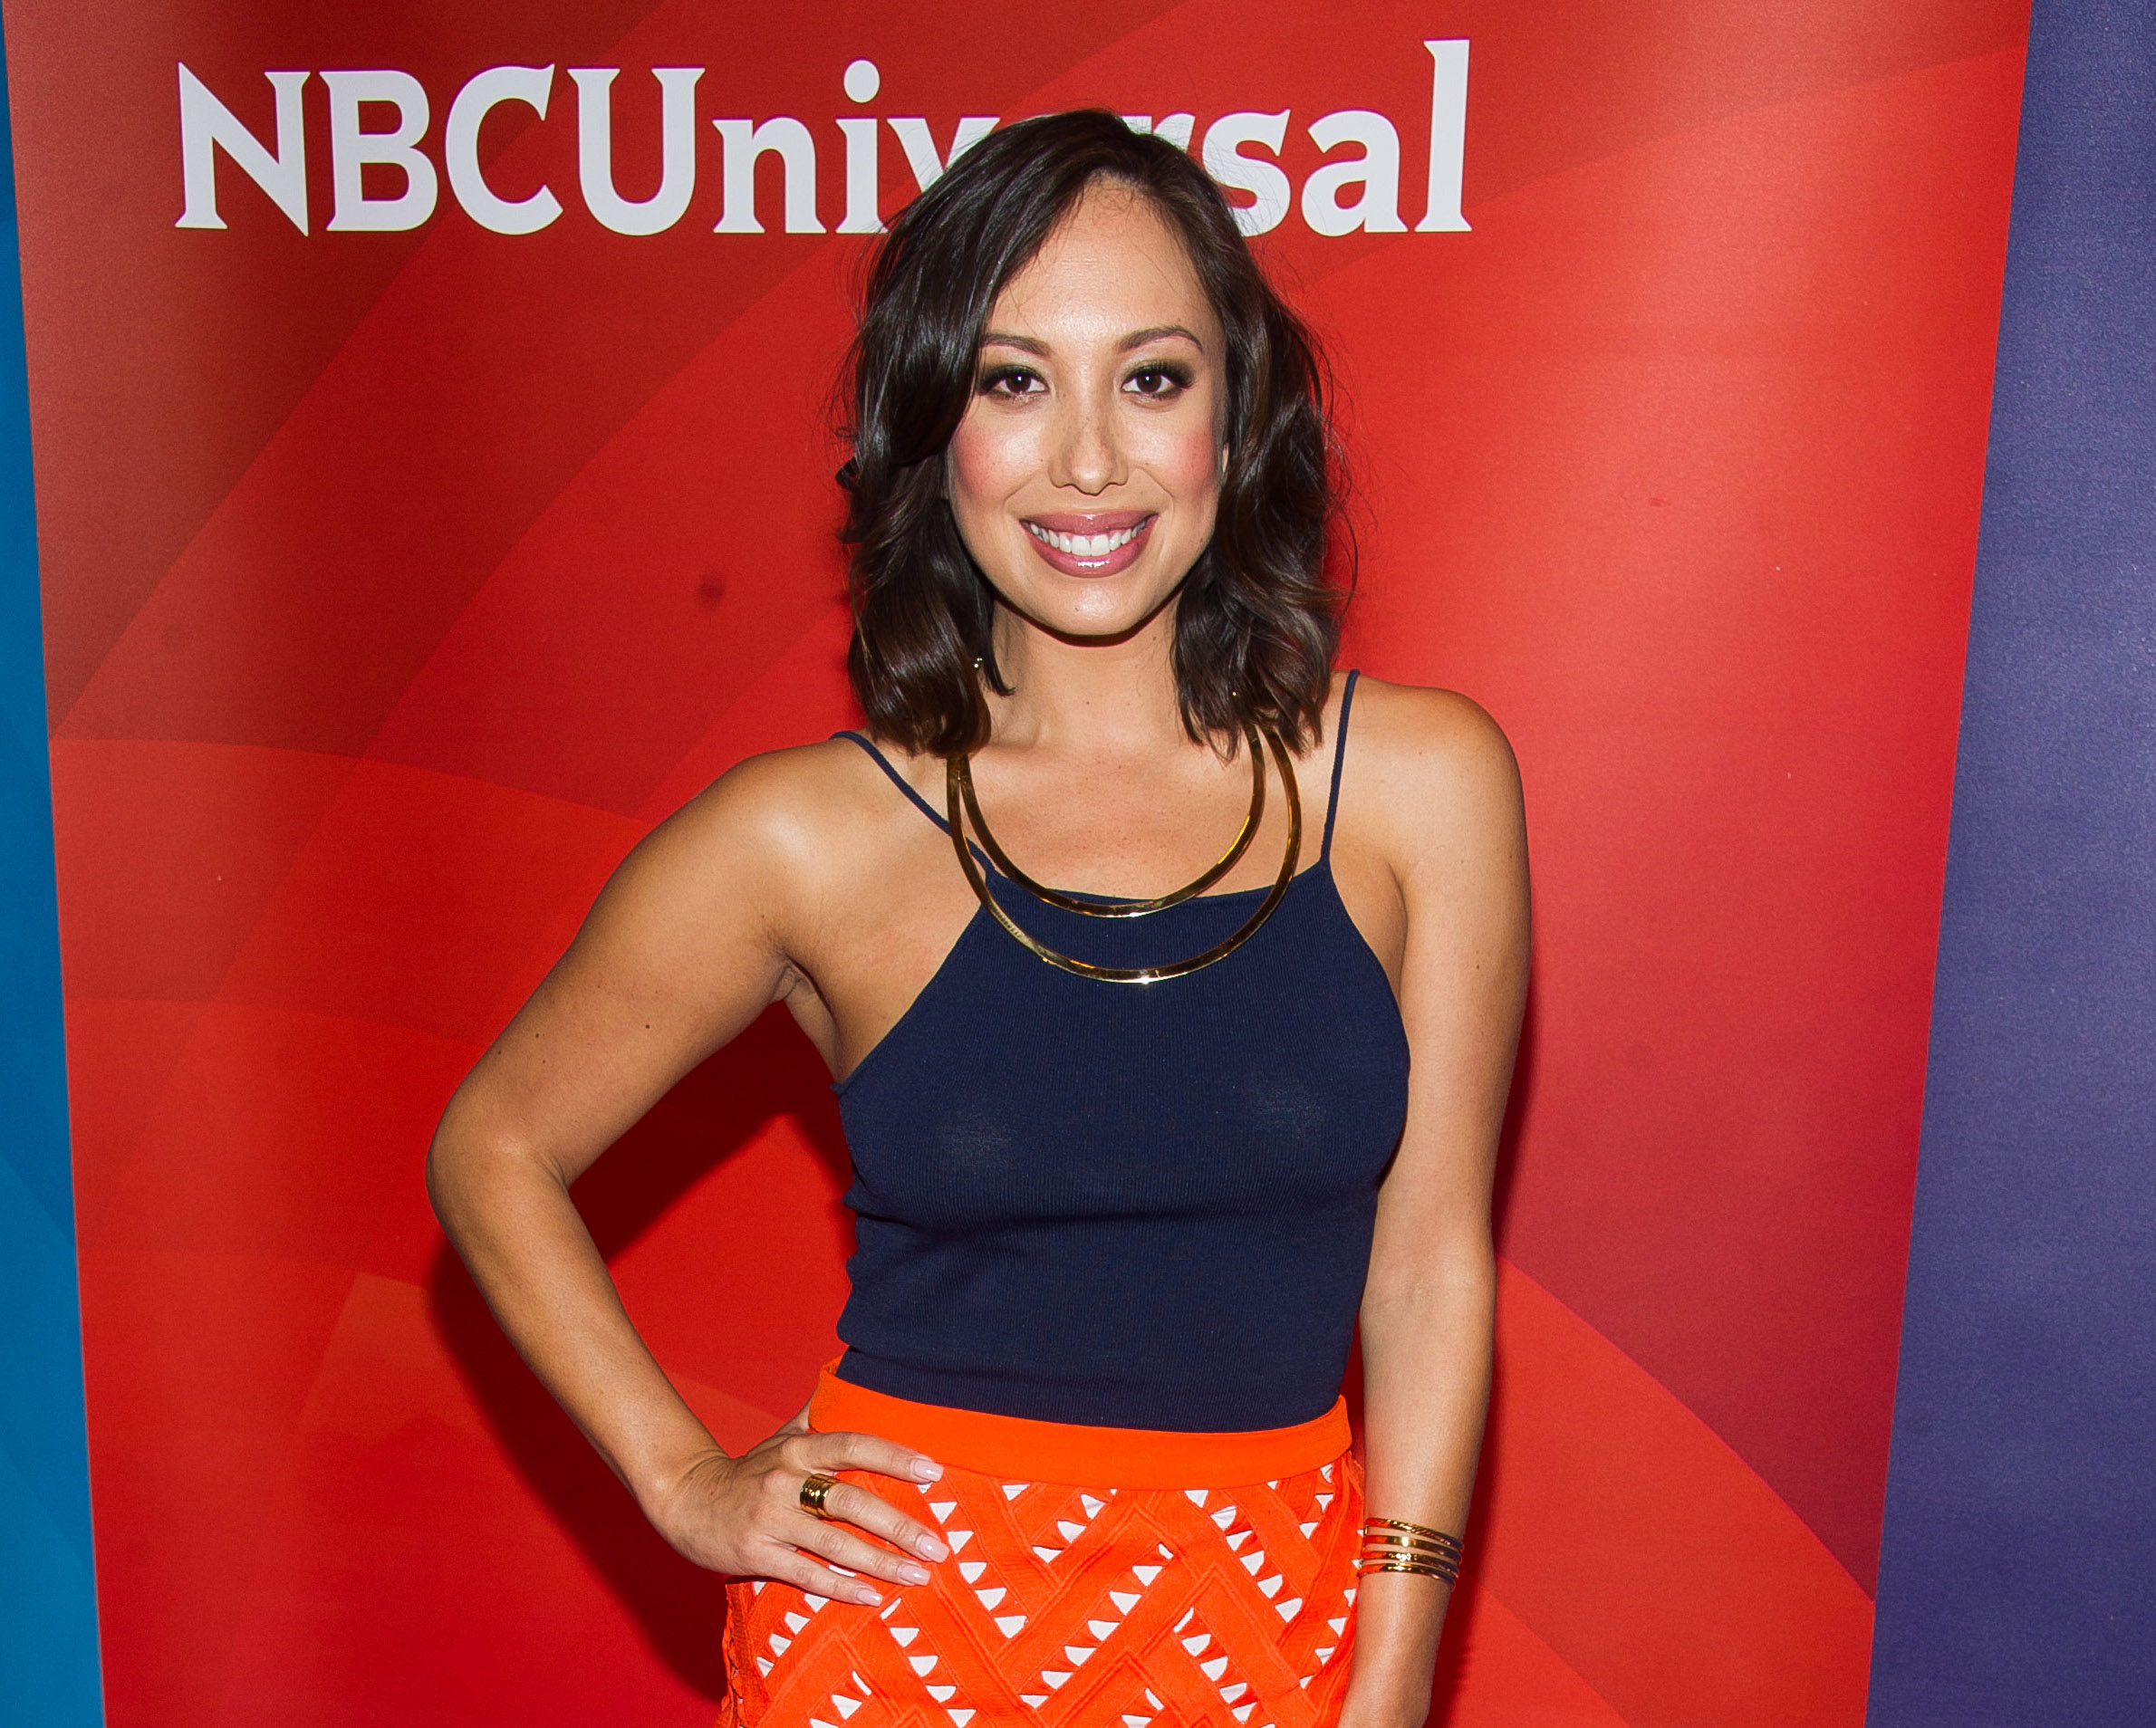 Cheryl Burke becomes 3rd Miss USA co-host to drop out